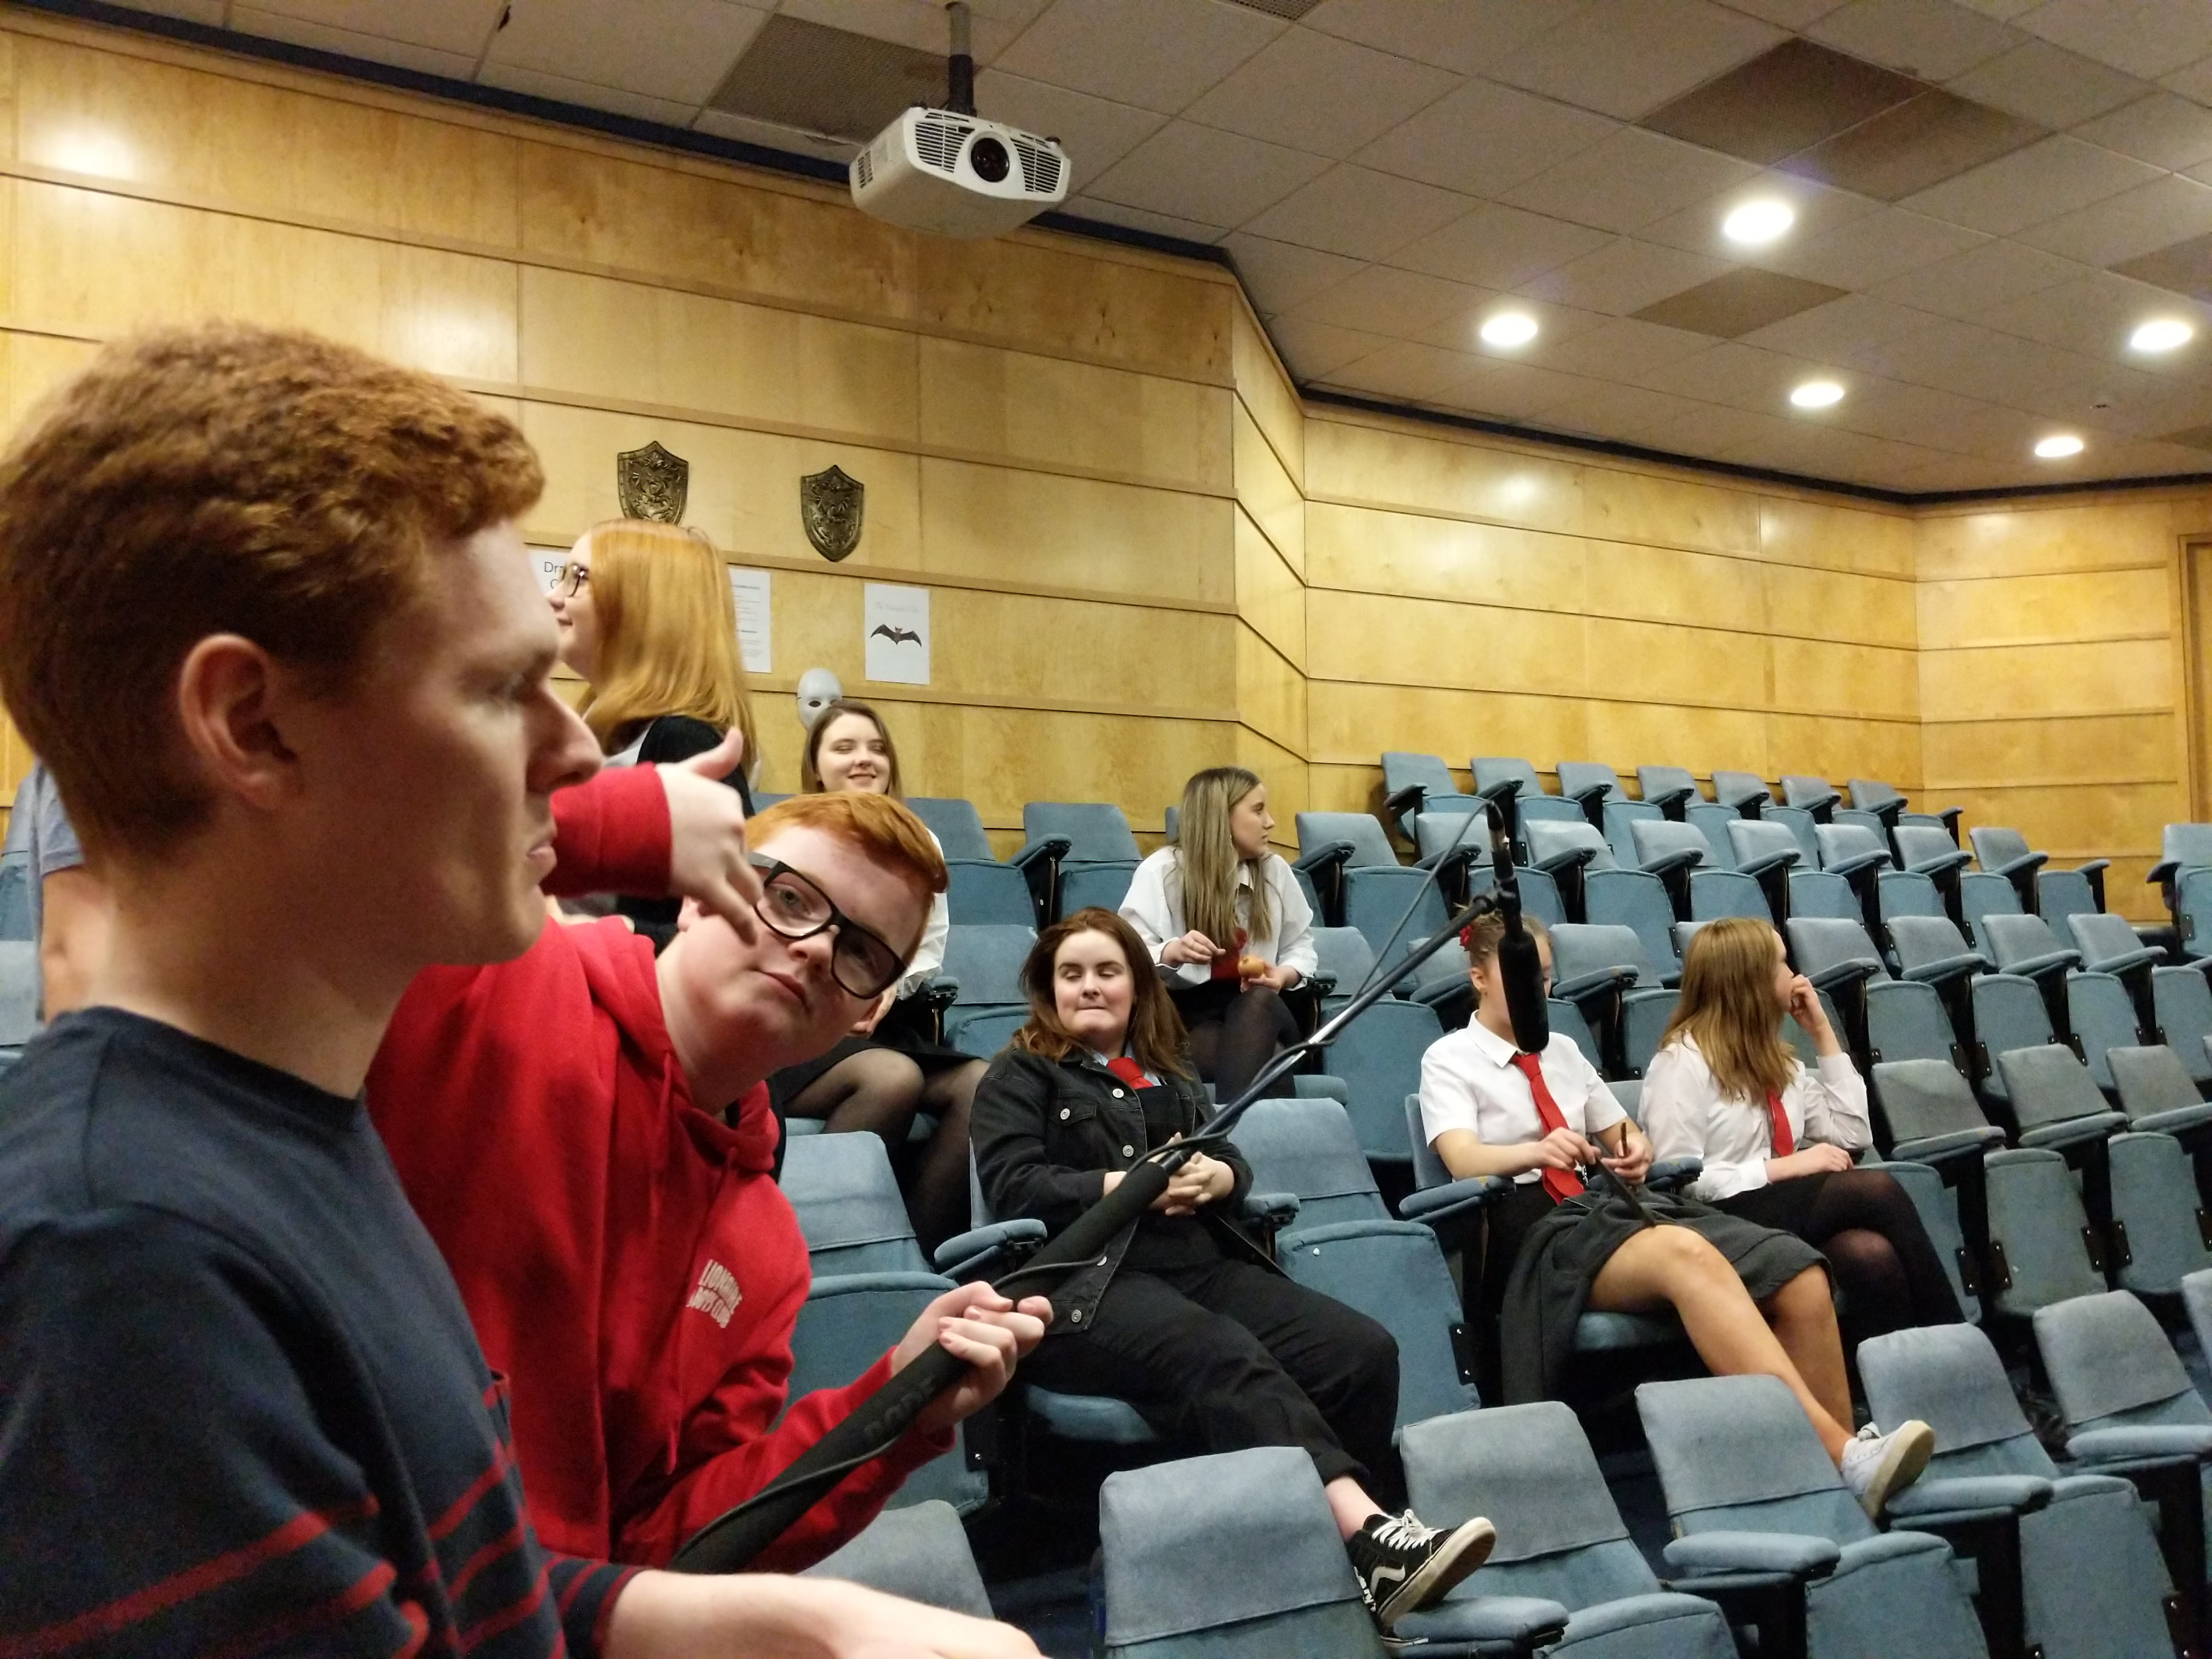 A picture of the Fyfe Lecture room with Abigail's friend Colby holding a boom pole